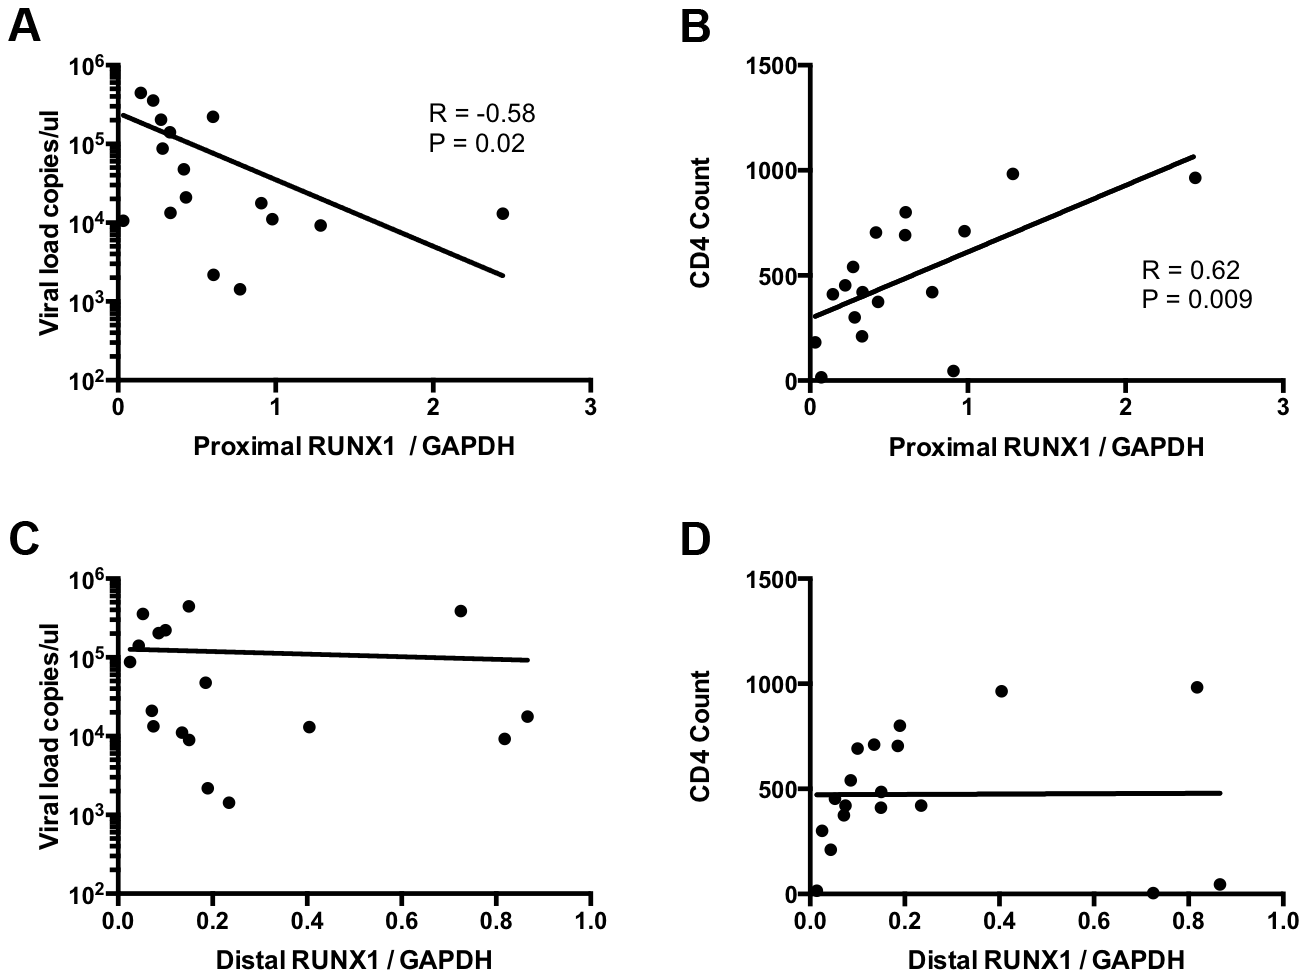 RUNX1 expression in memory CD4+ T-cells correlates with clinical metrics in patients.